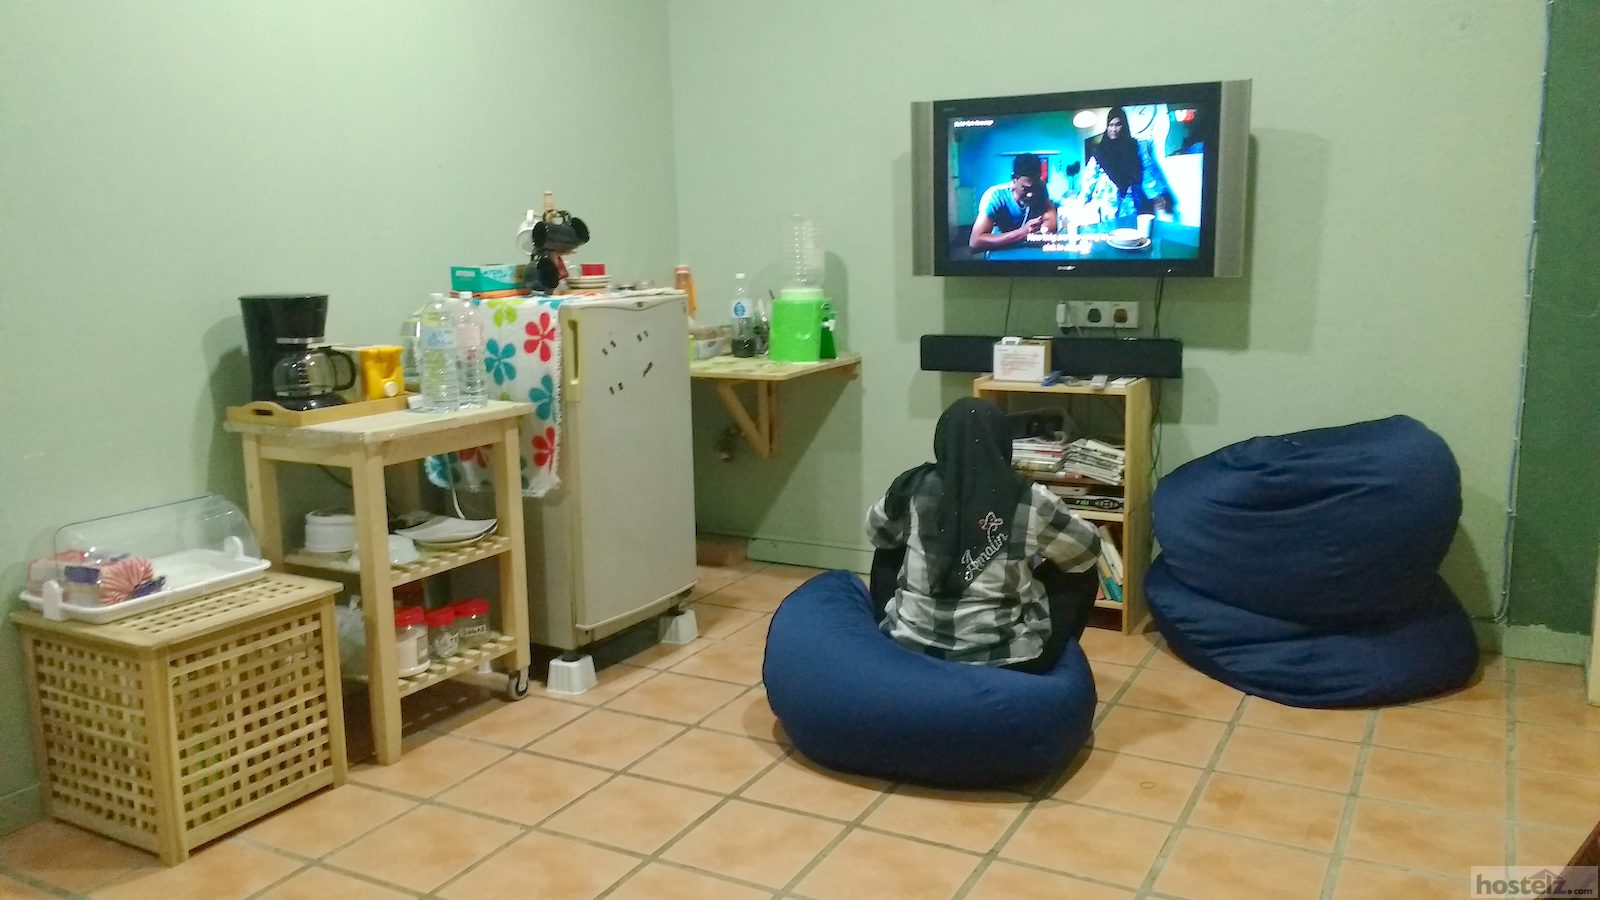 the TV and breakfast area